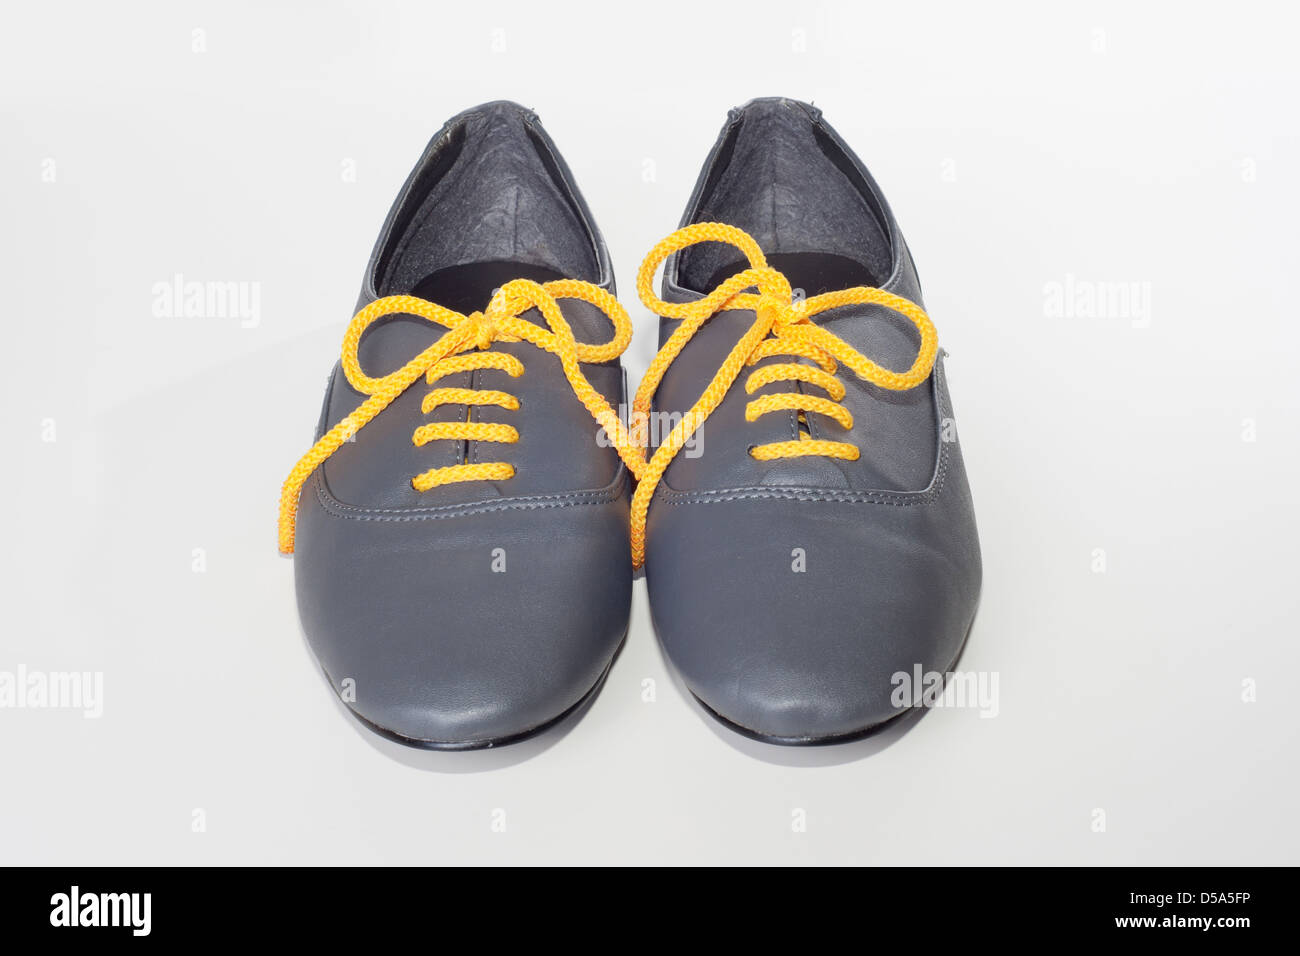 gray boots with yellow laces on a white background - Stock Image